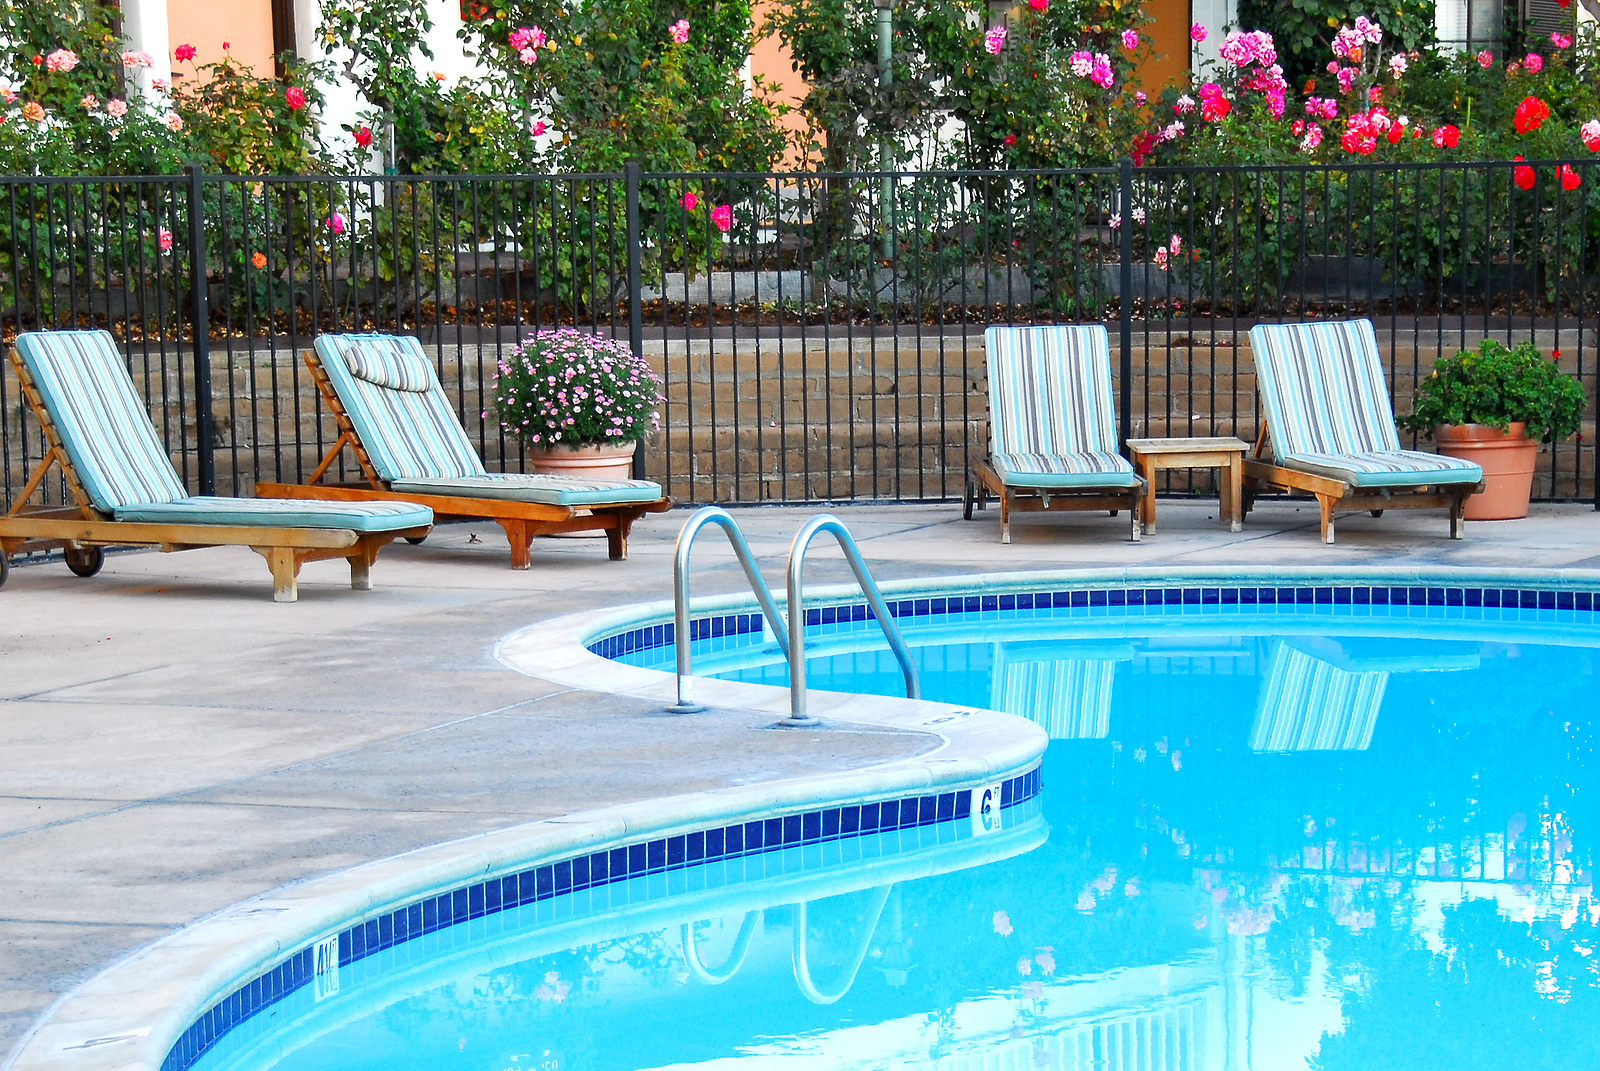 Airbnb for Pools: Is it Worth the Risk?